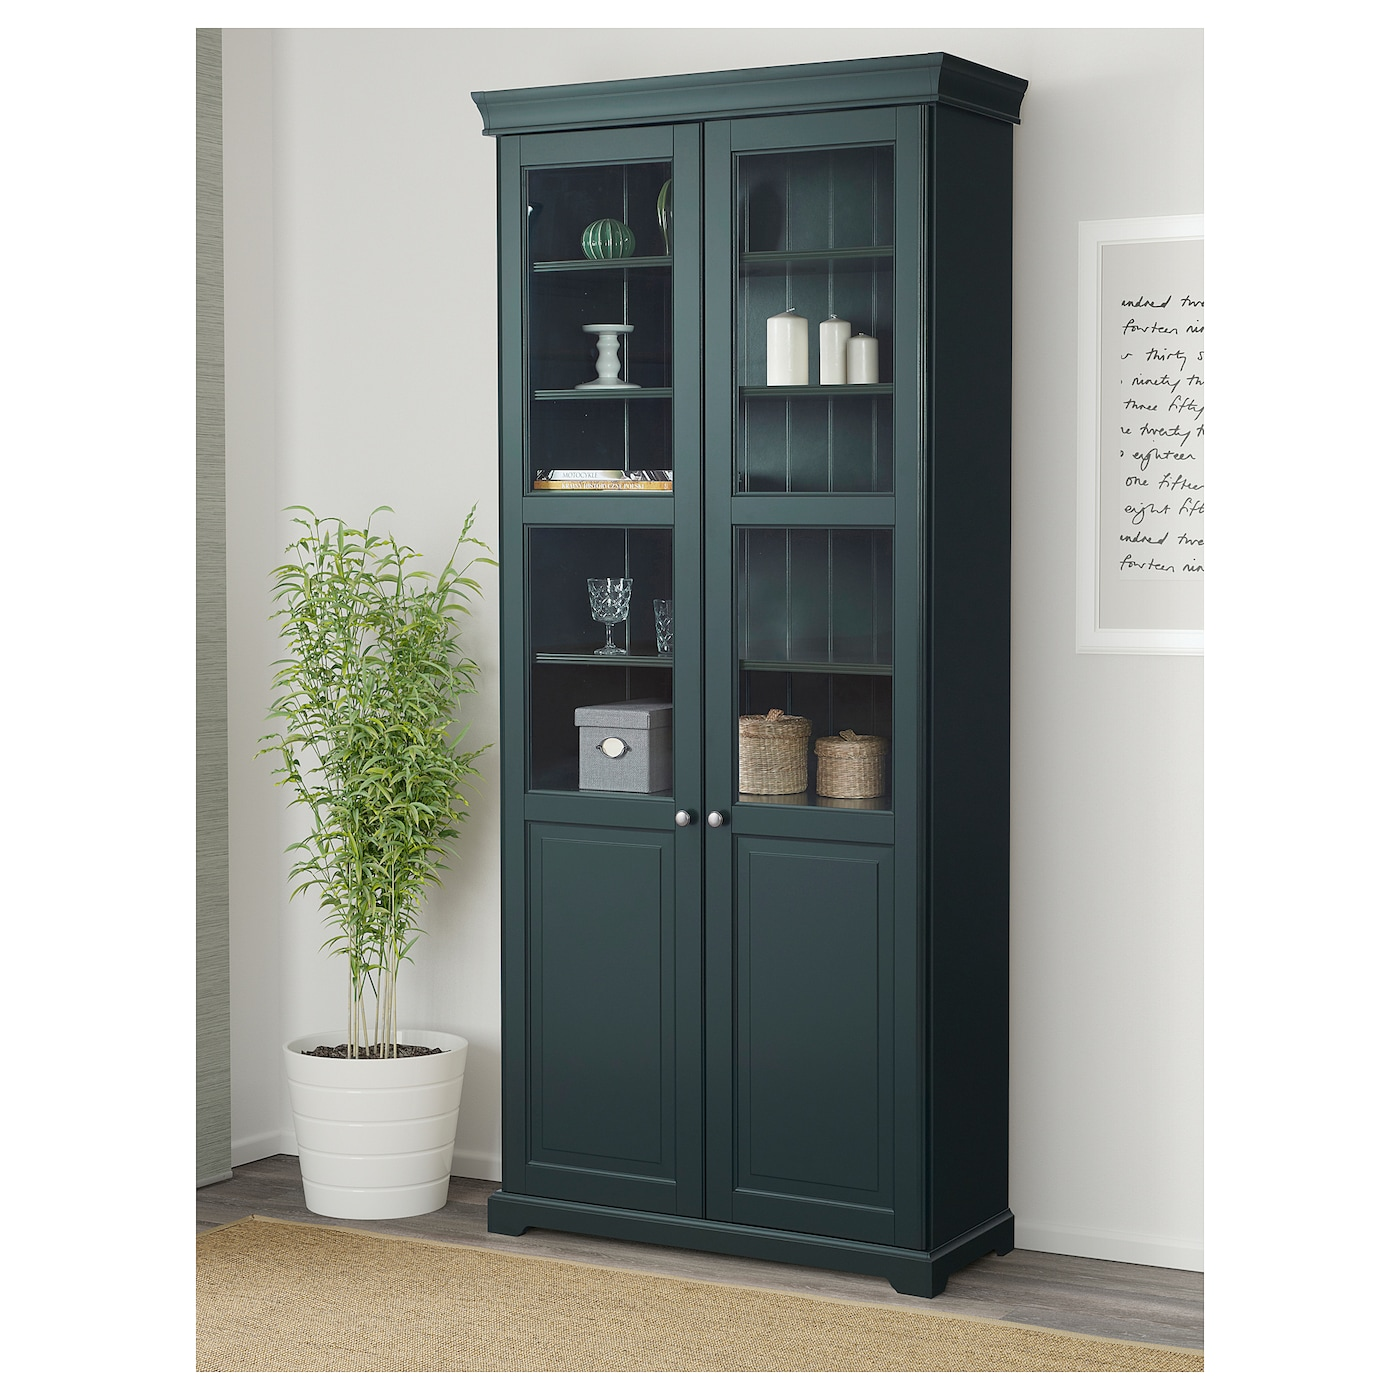 IKEA LIATORP bookcase with glass doors LIATORP Bookcase